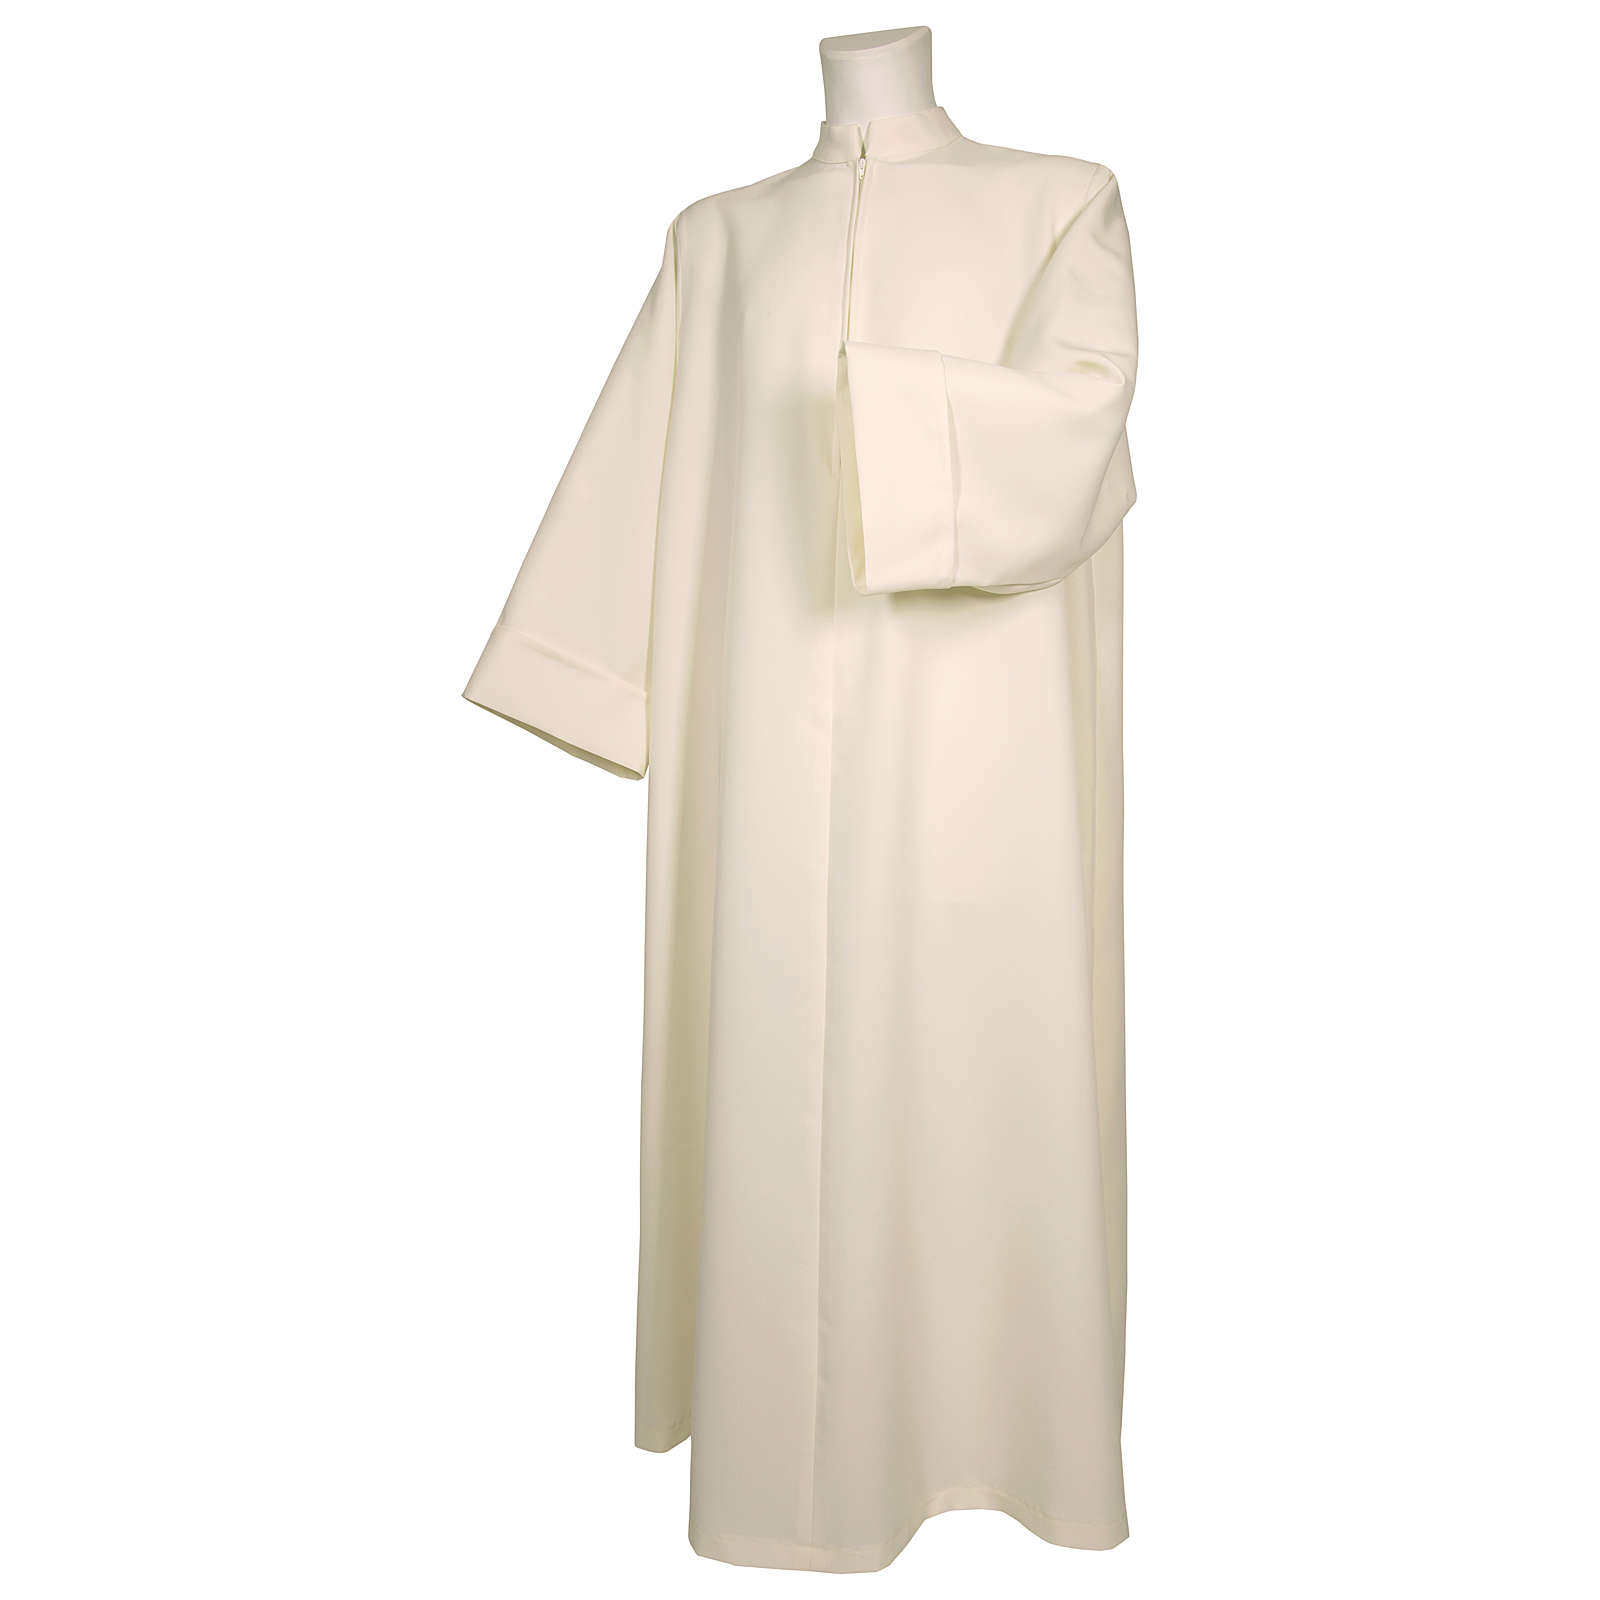 Alb in polyester, flared with zipper on the front, ivory 4